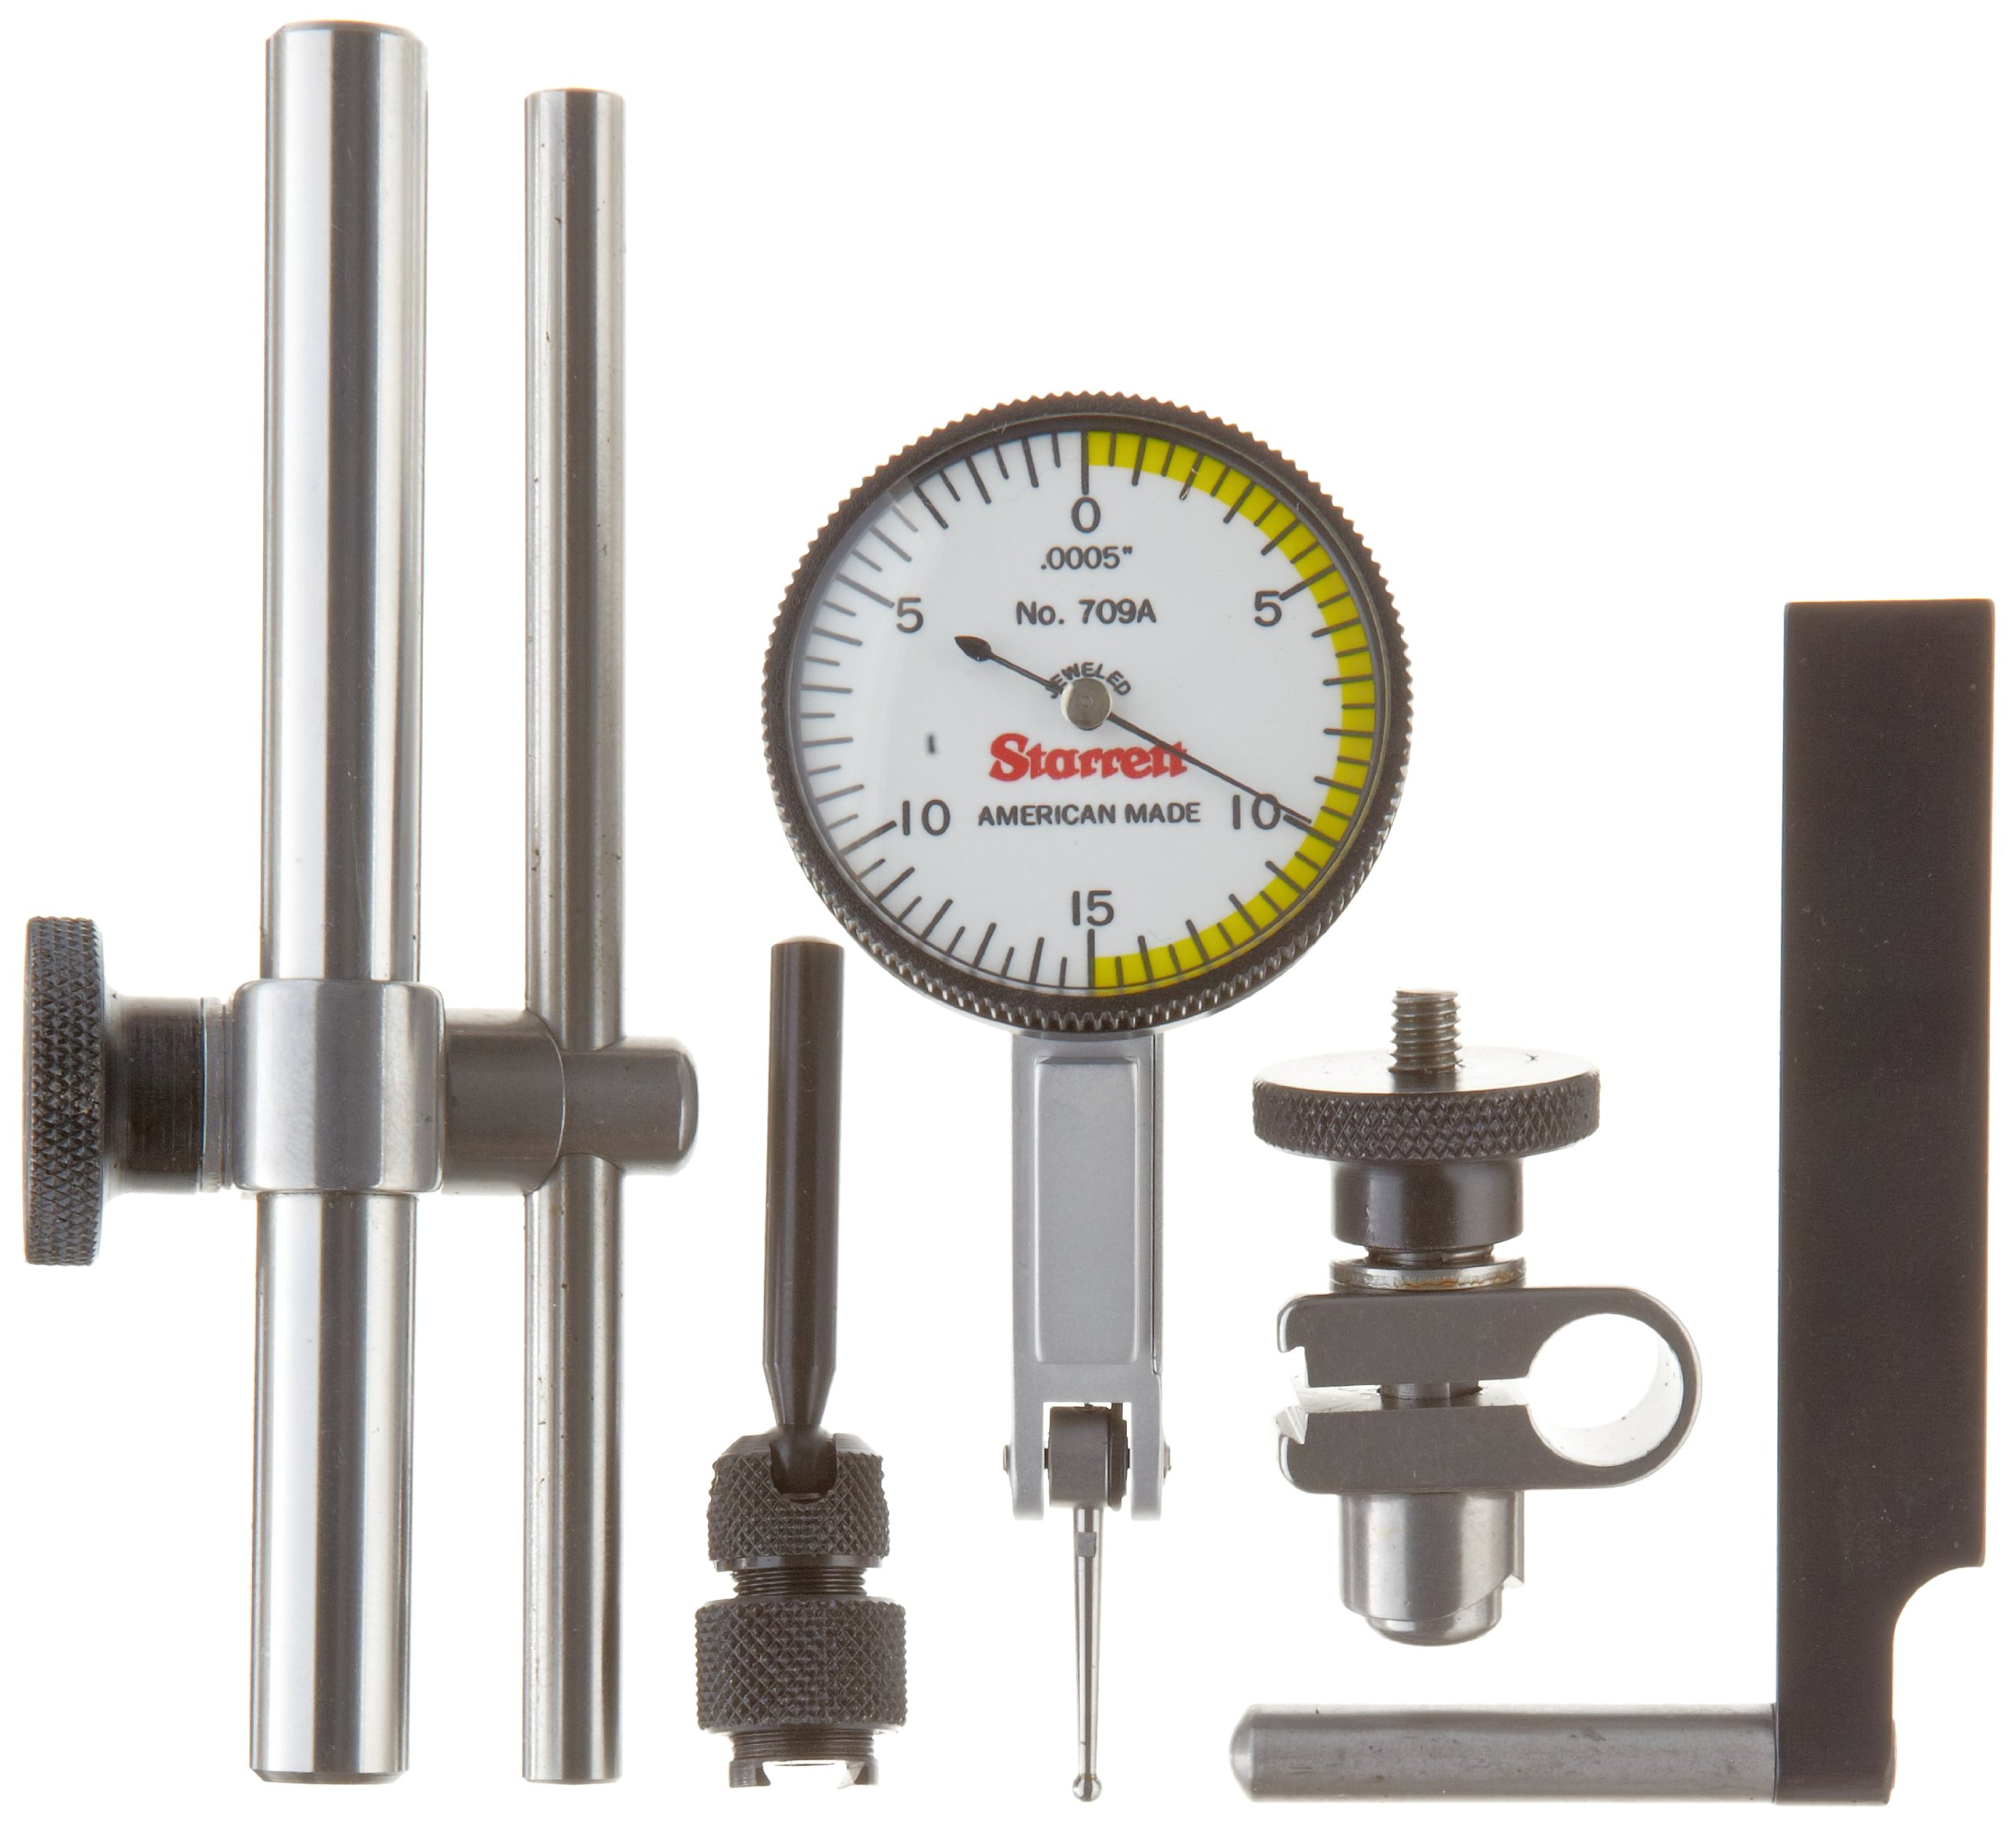 Starrett 709ACZ Dial Test Indicator with Attachments, Dovetail Mount, White Dial, 0-15-0 Reading, 1.375'' Dial Dia., 0-0.03'' Range, 0.0005'' Graduation, +/-0.0005'' Accuracy